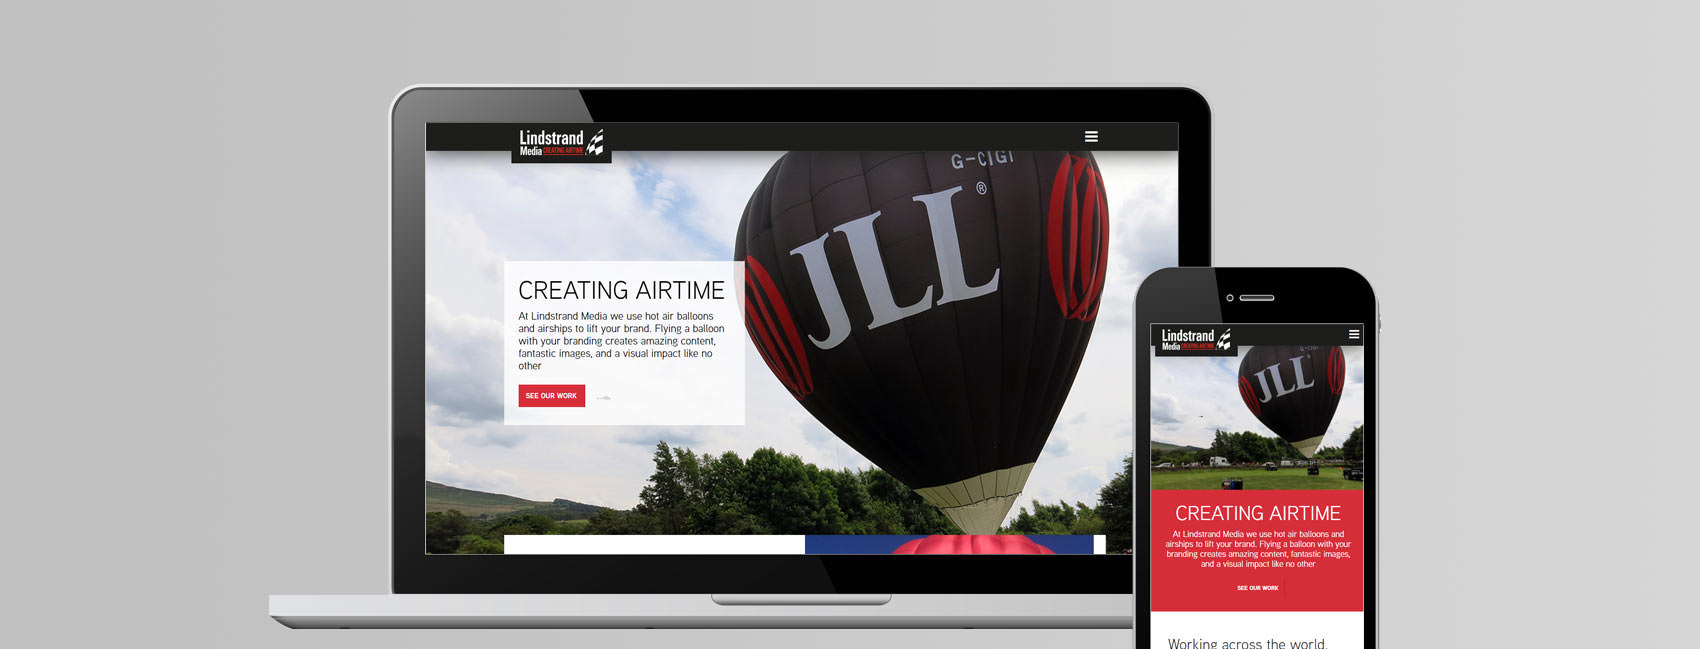 lindstrand media marketing website